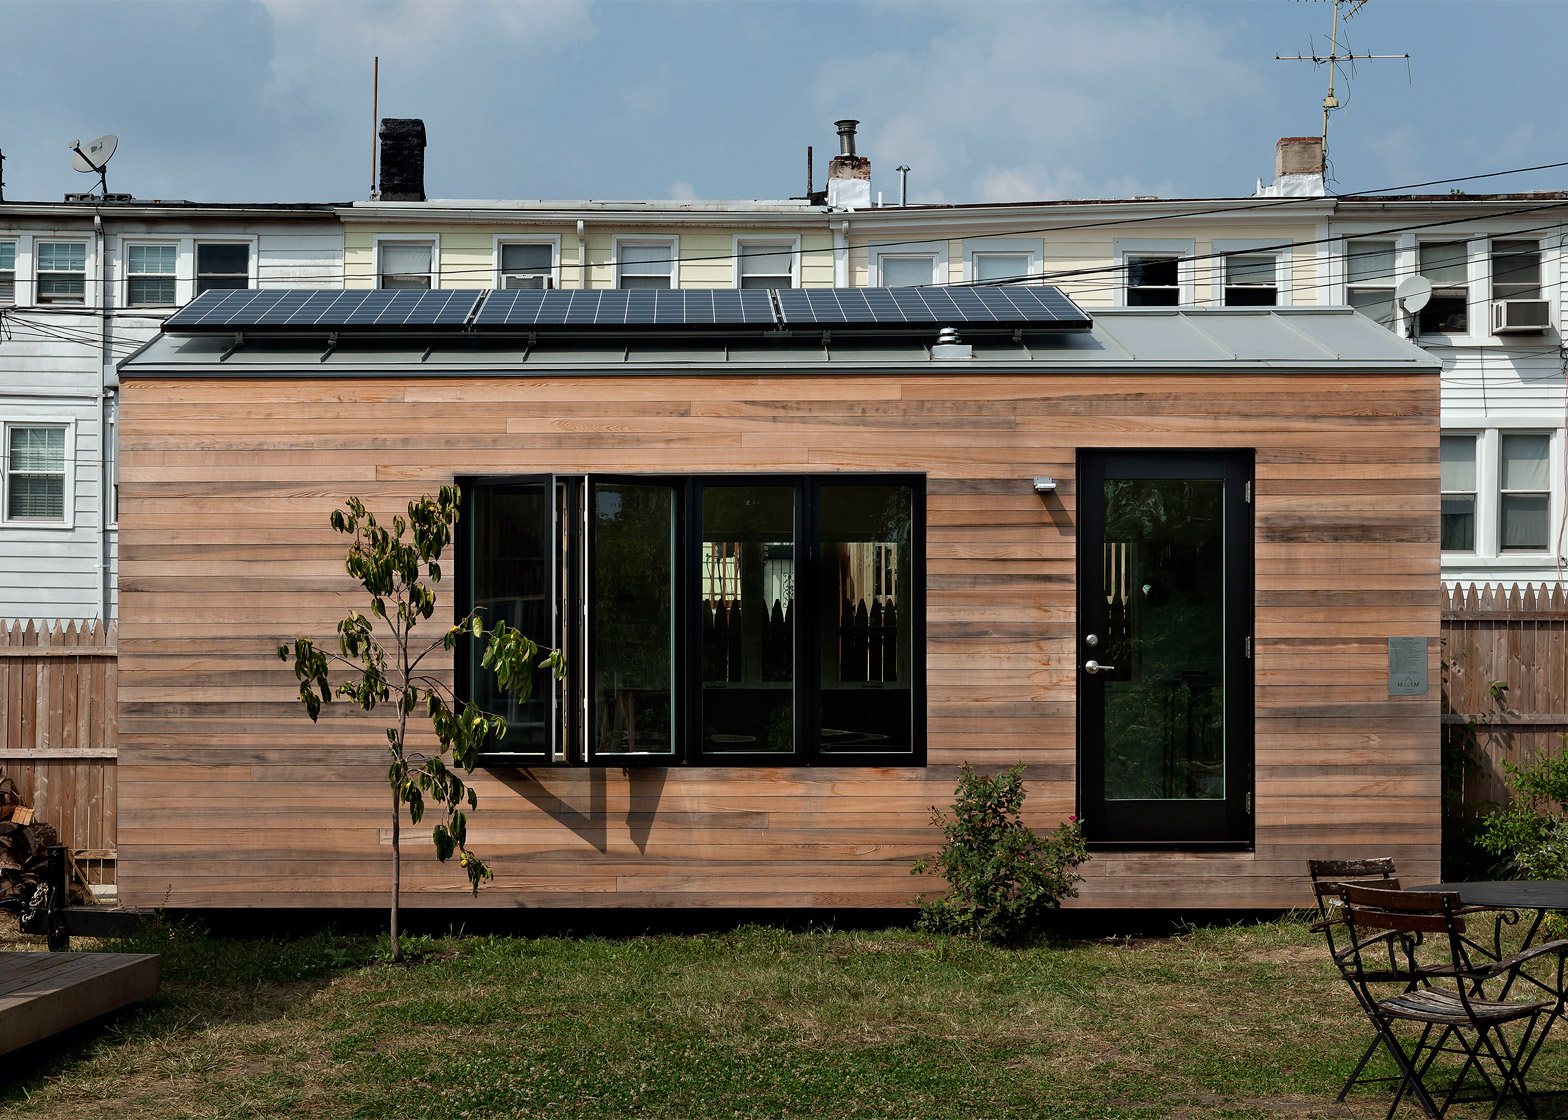 How you should decorate a tiny home, by Foundry Architects